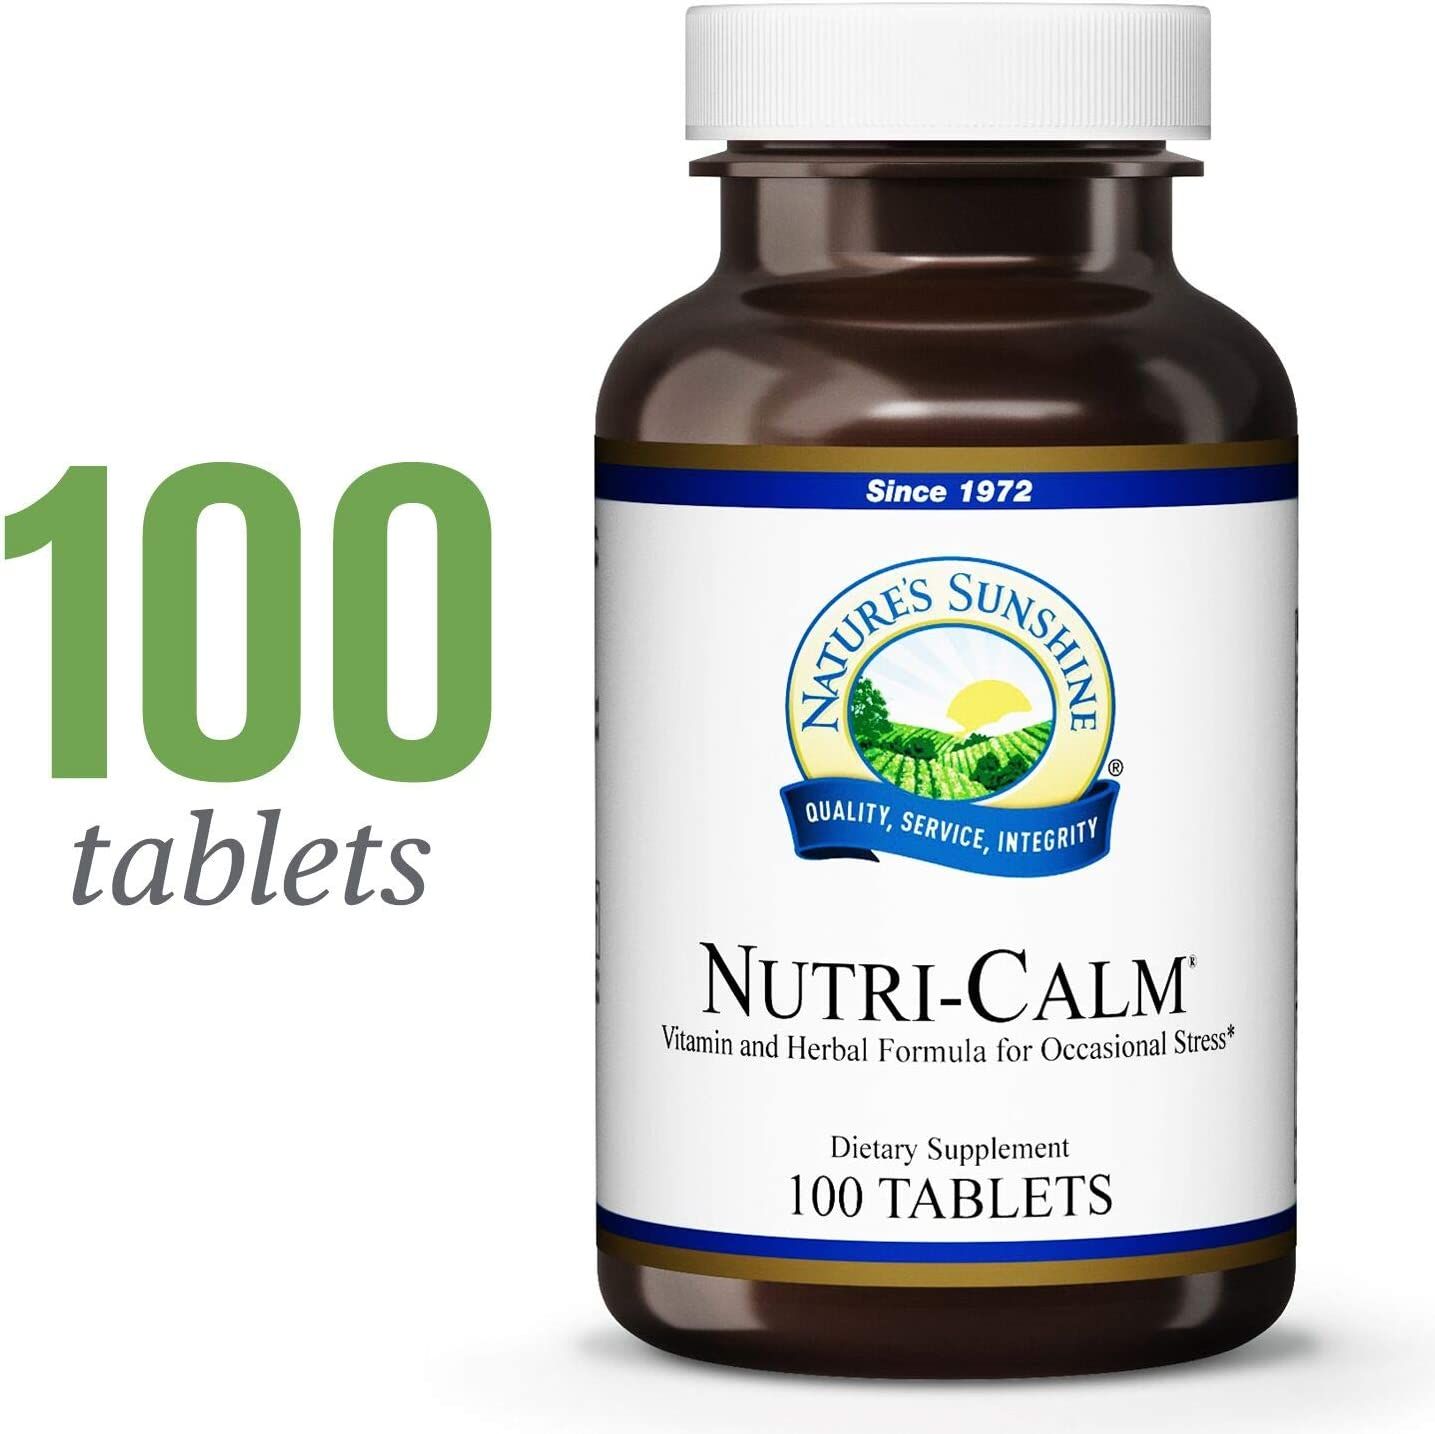 Nature s Sunshine Nutri-Calm, 100 Tablets Natural Anxiety Supplement to Promote Peace of Mind and Cope with Occasional Stress